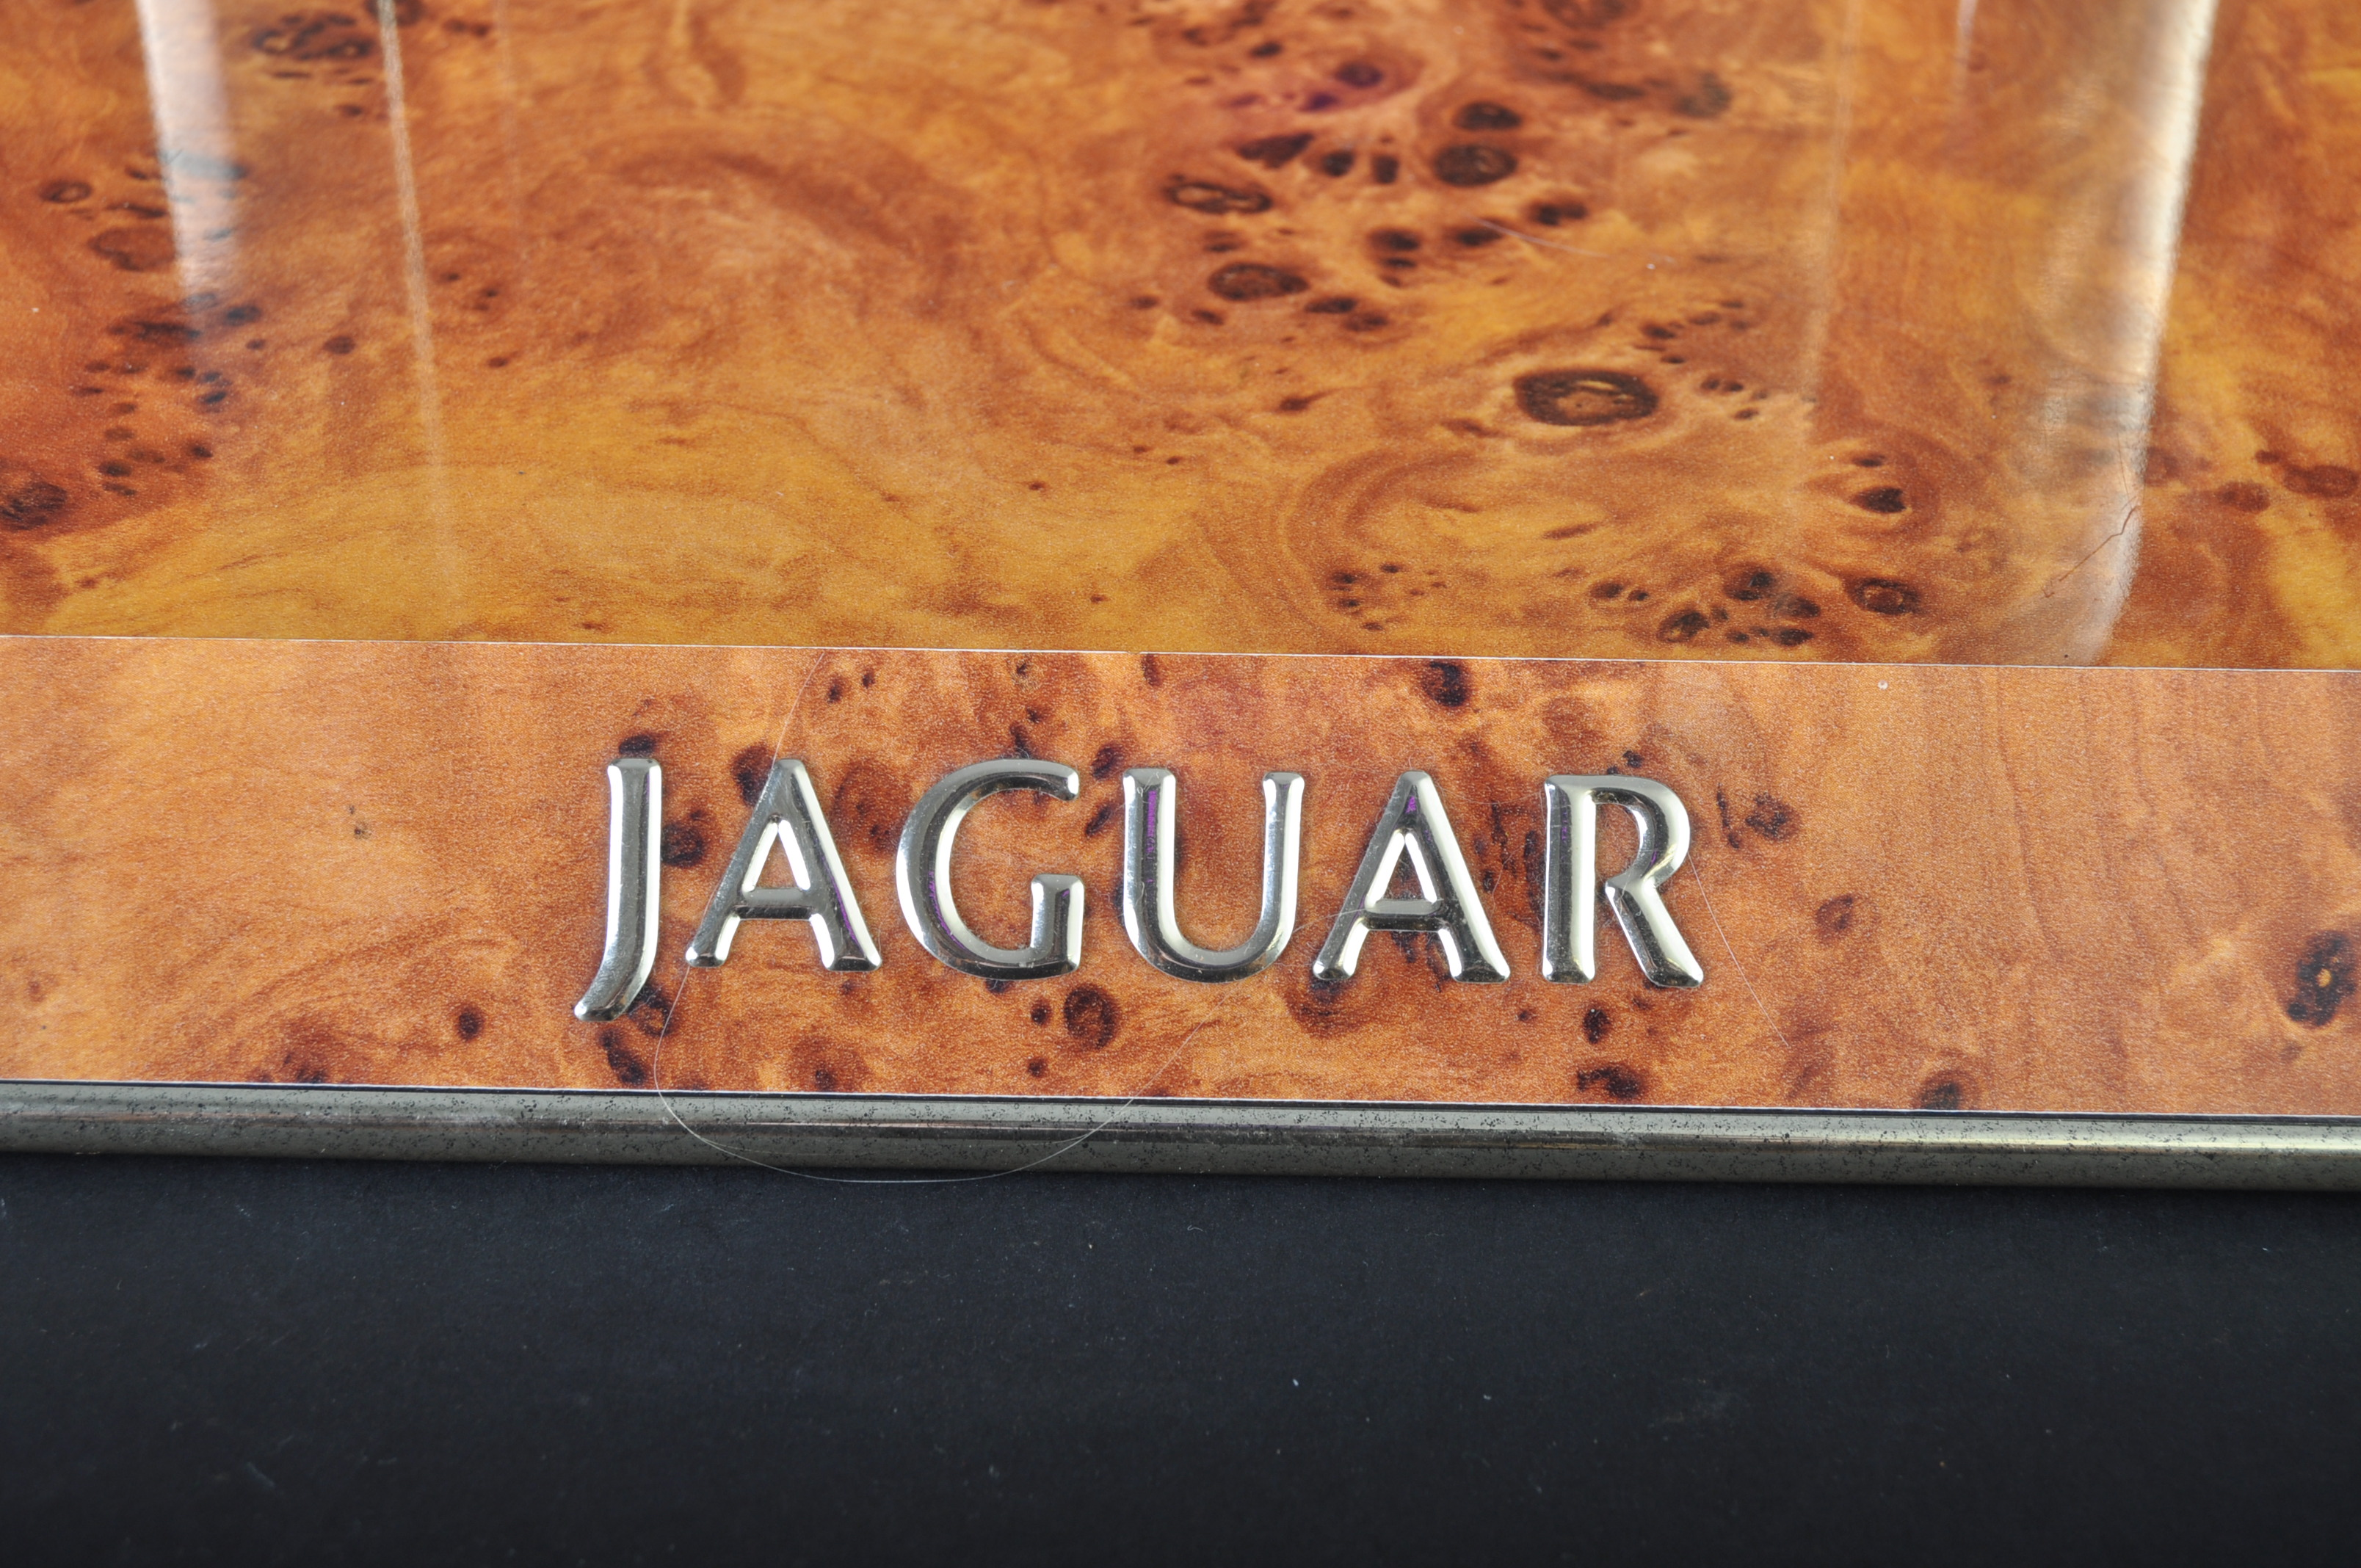 JAGUAR - ORIGINAL VINTAGE PERFUME / AFTERSHAVE SHOW DISPLAY - Image 4 of 6